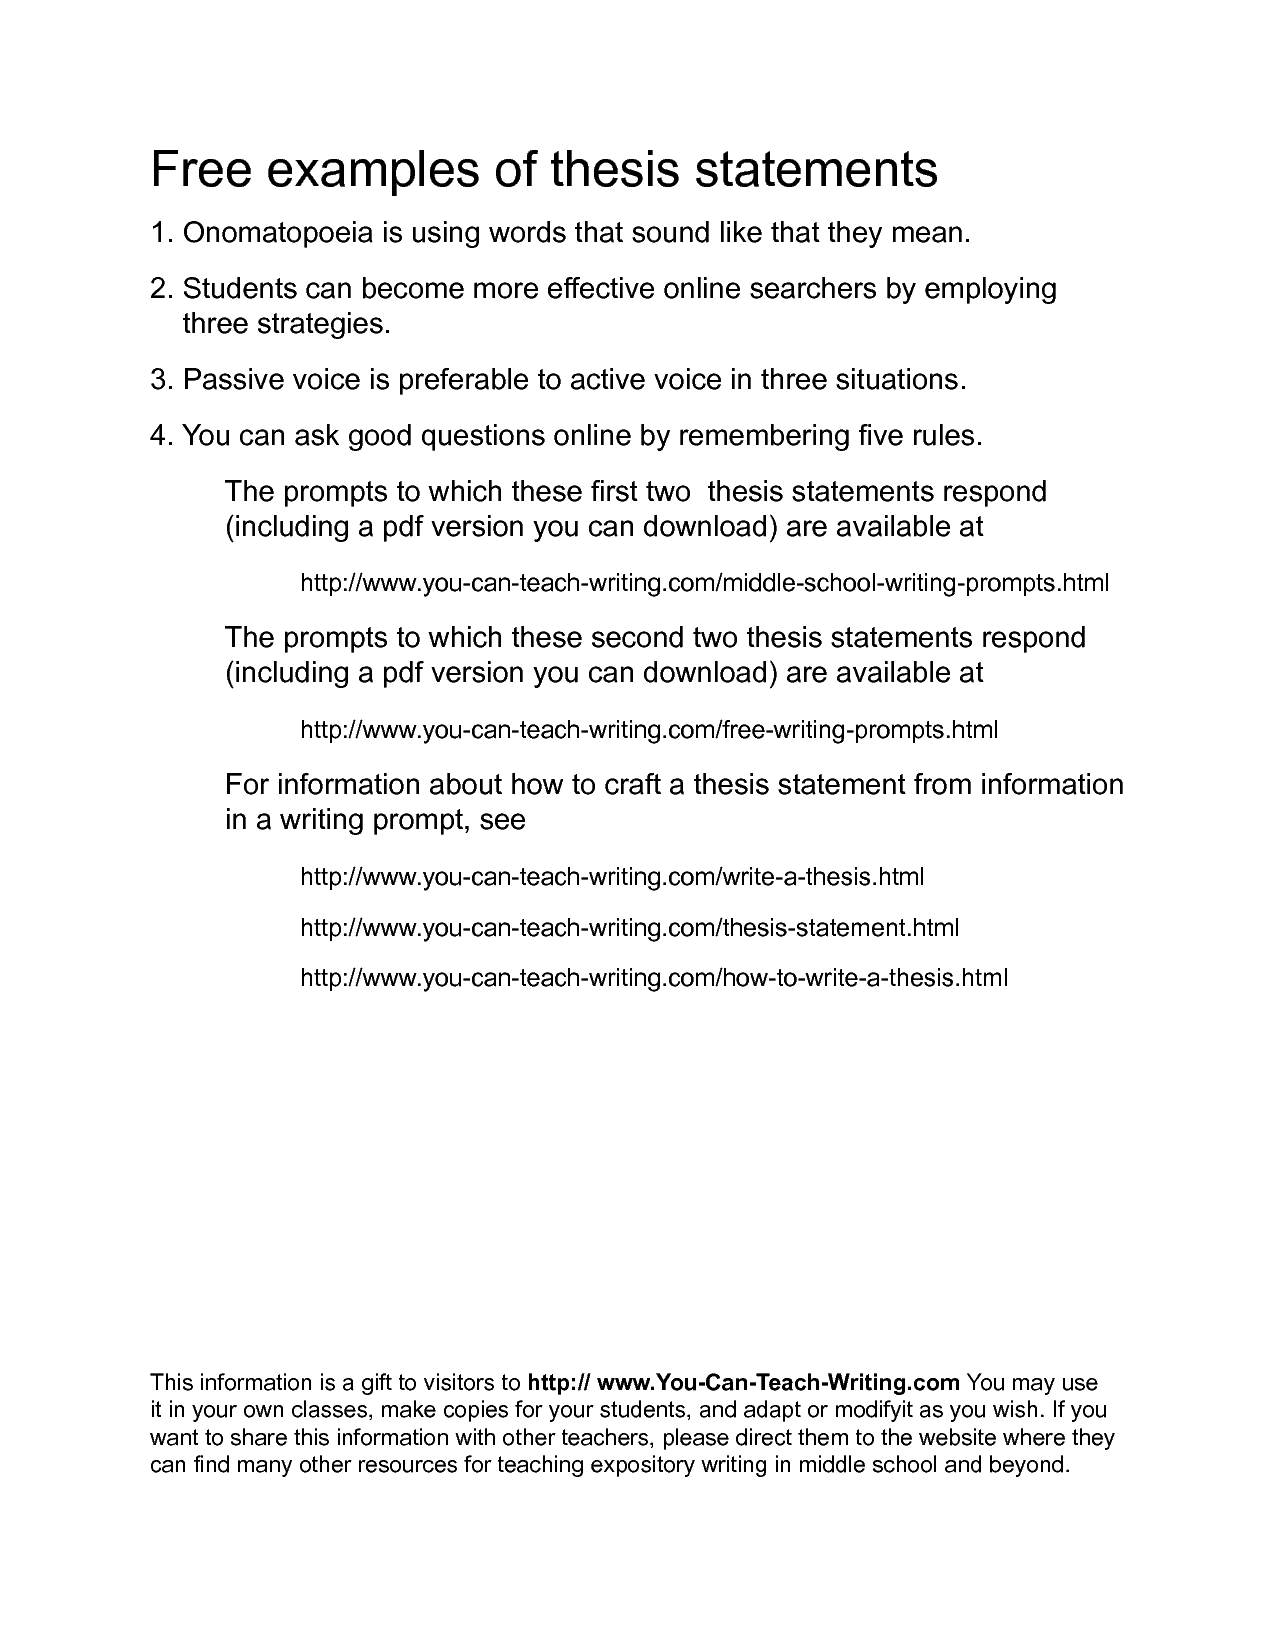 Secondary School English Essay  Example Of A Thesis Statement In An Essay also Examples Of Argumentative Thesis Statements For Essays Purpose Of A Thesis Statement  Thesis  Thesis Statement  Response Essay Thesis